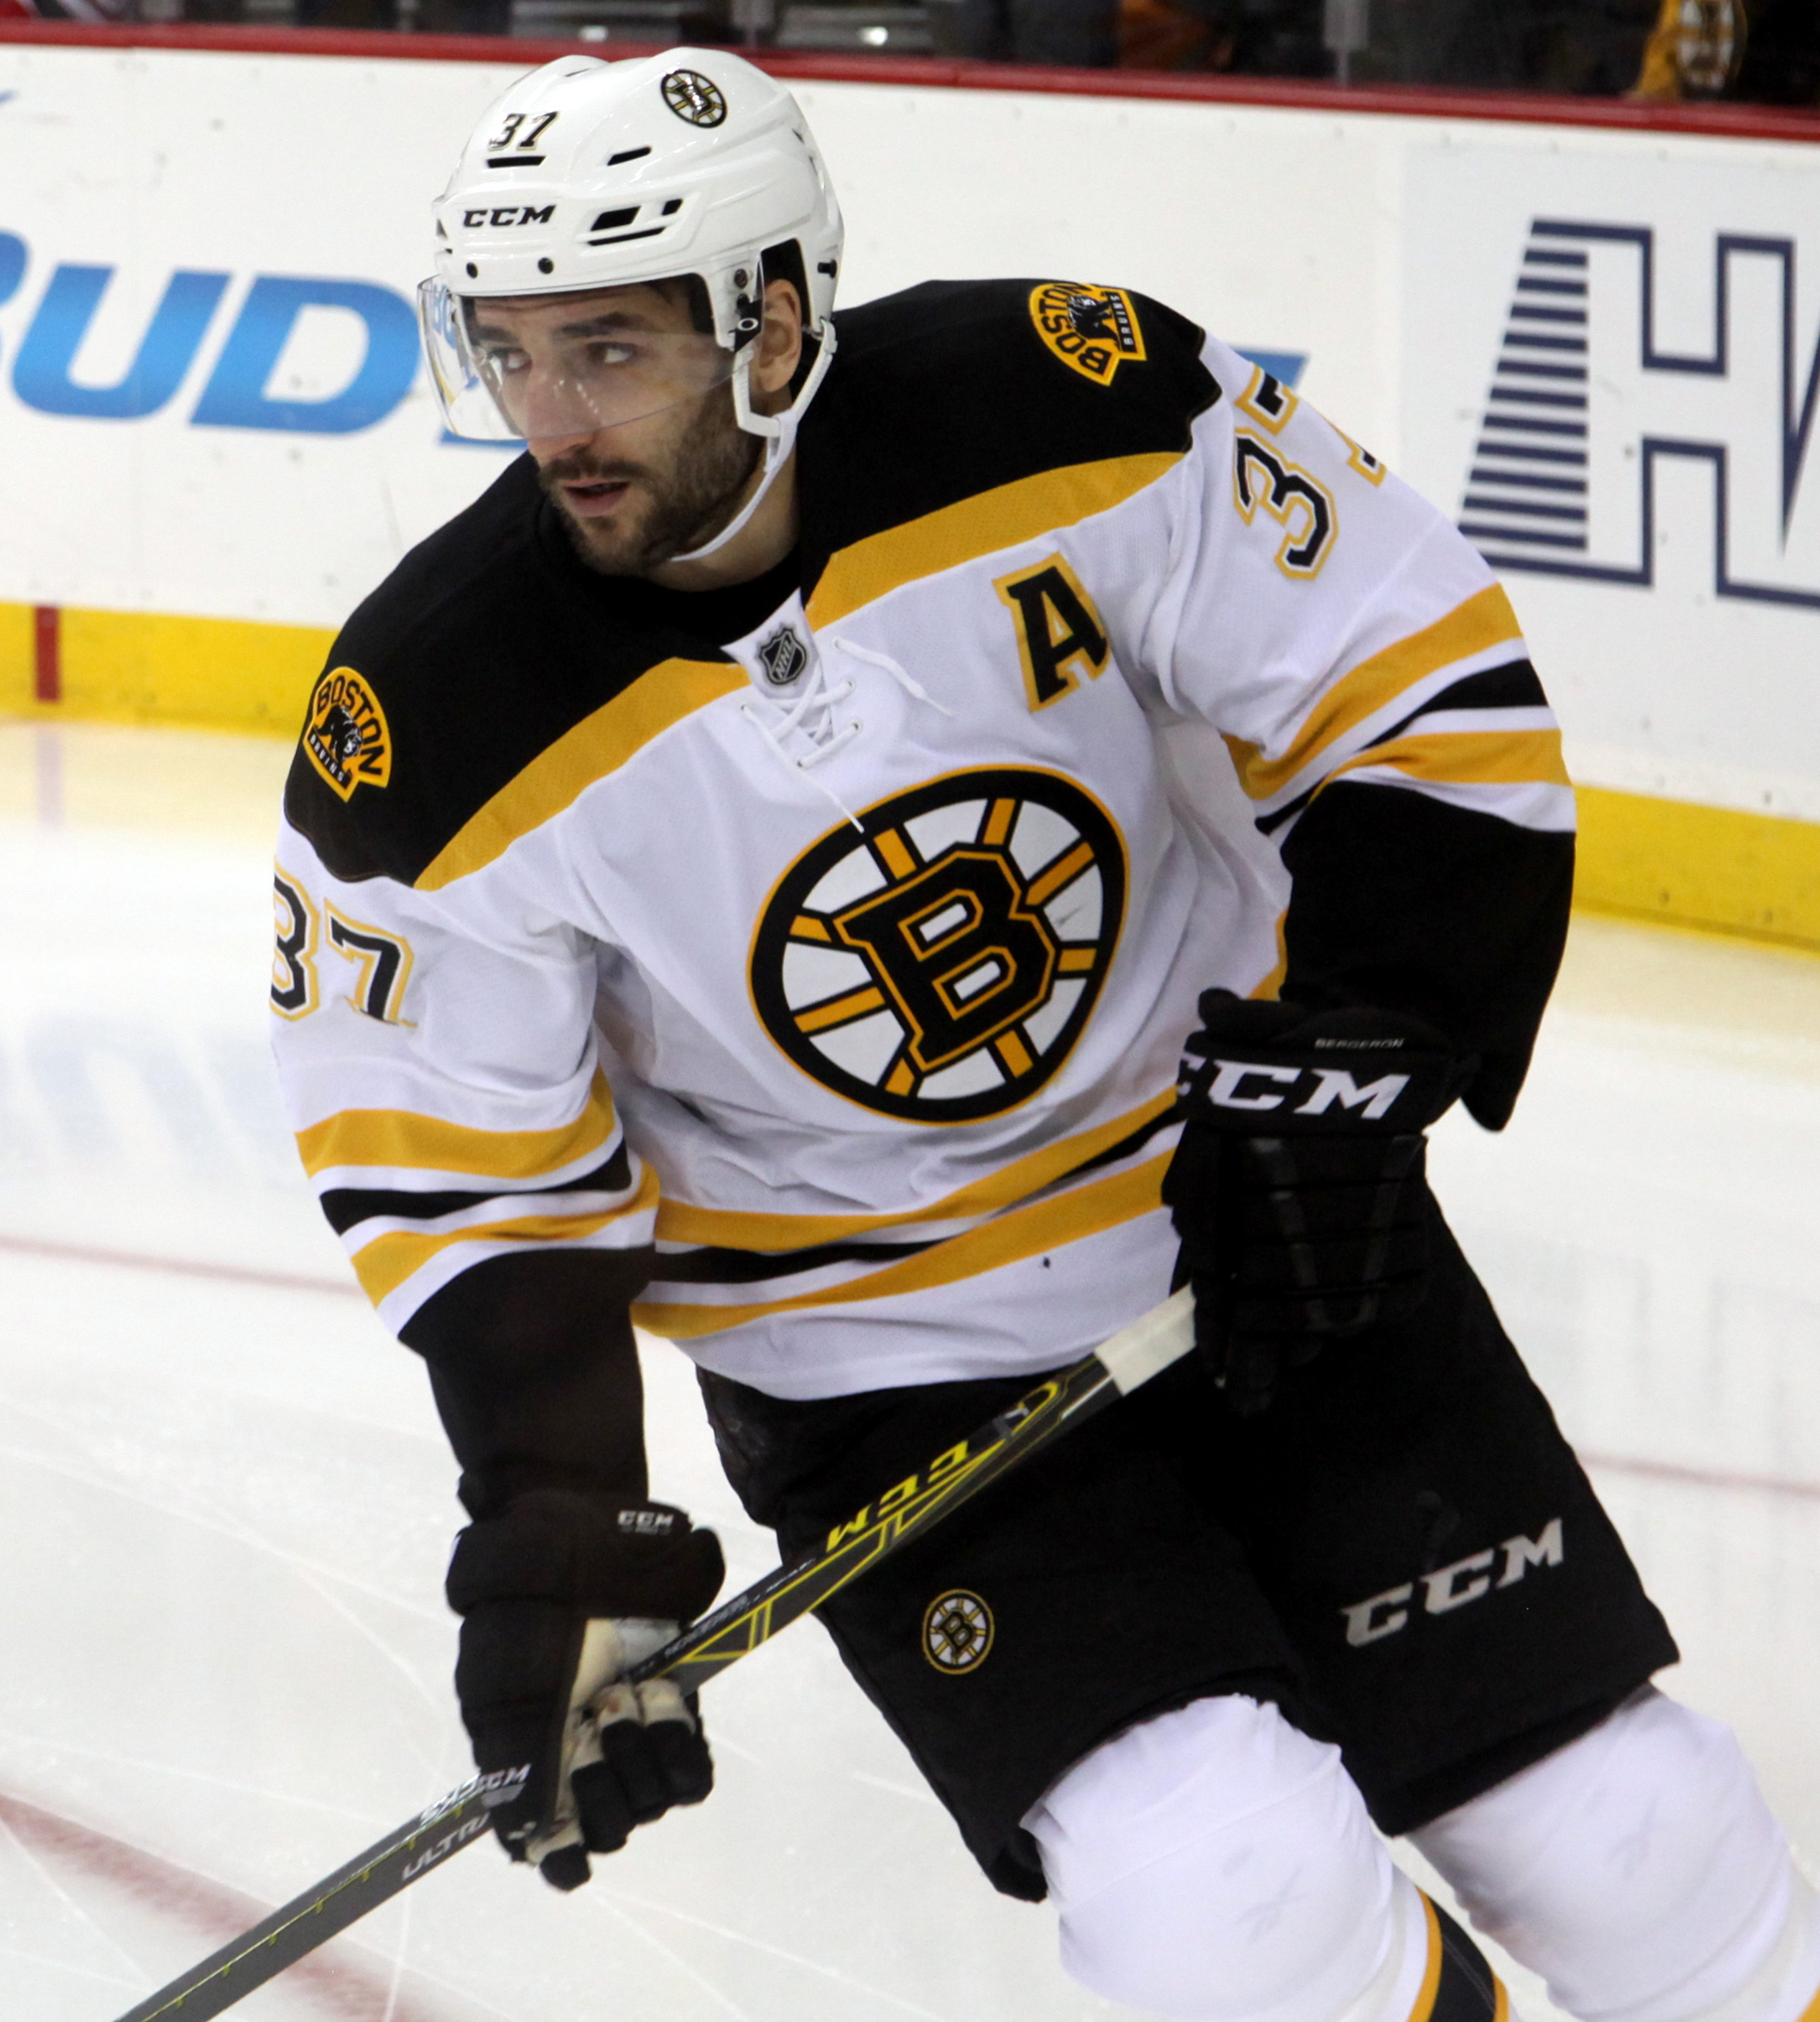 The 33-year old son of father Gerard Cleary and mother(?) Patrice Bergeron in 2018 photo. Patrice Bergeron earned a 7.5 million dollar salary - leaving the net worth at 23 million in 2018